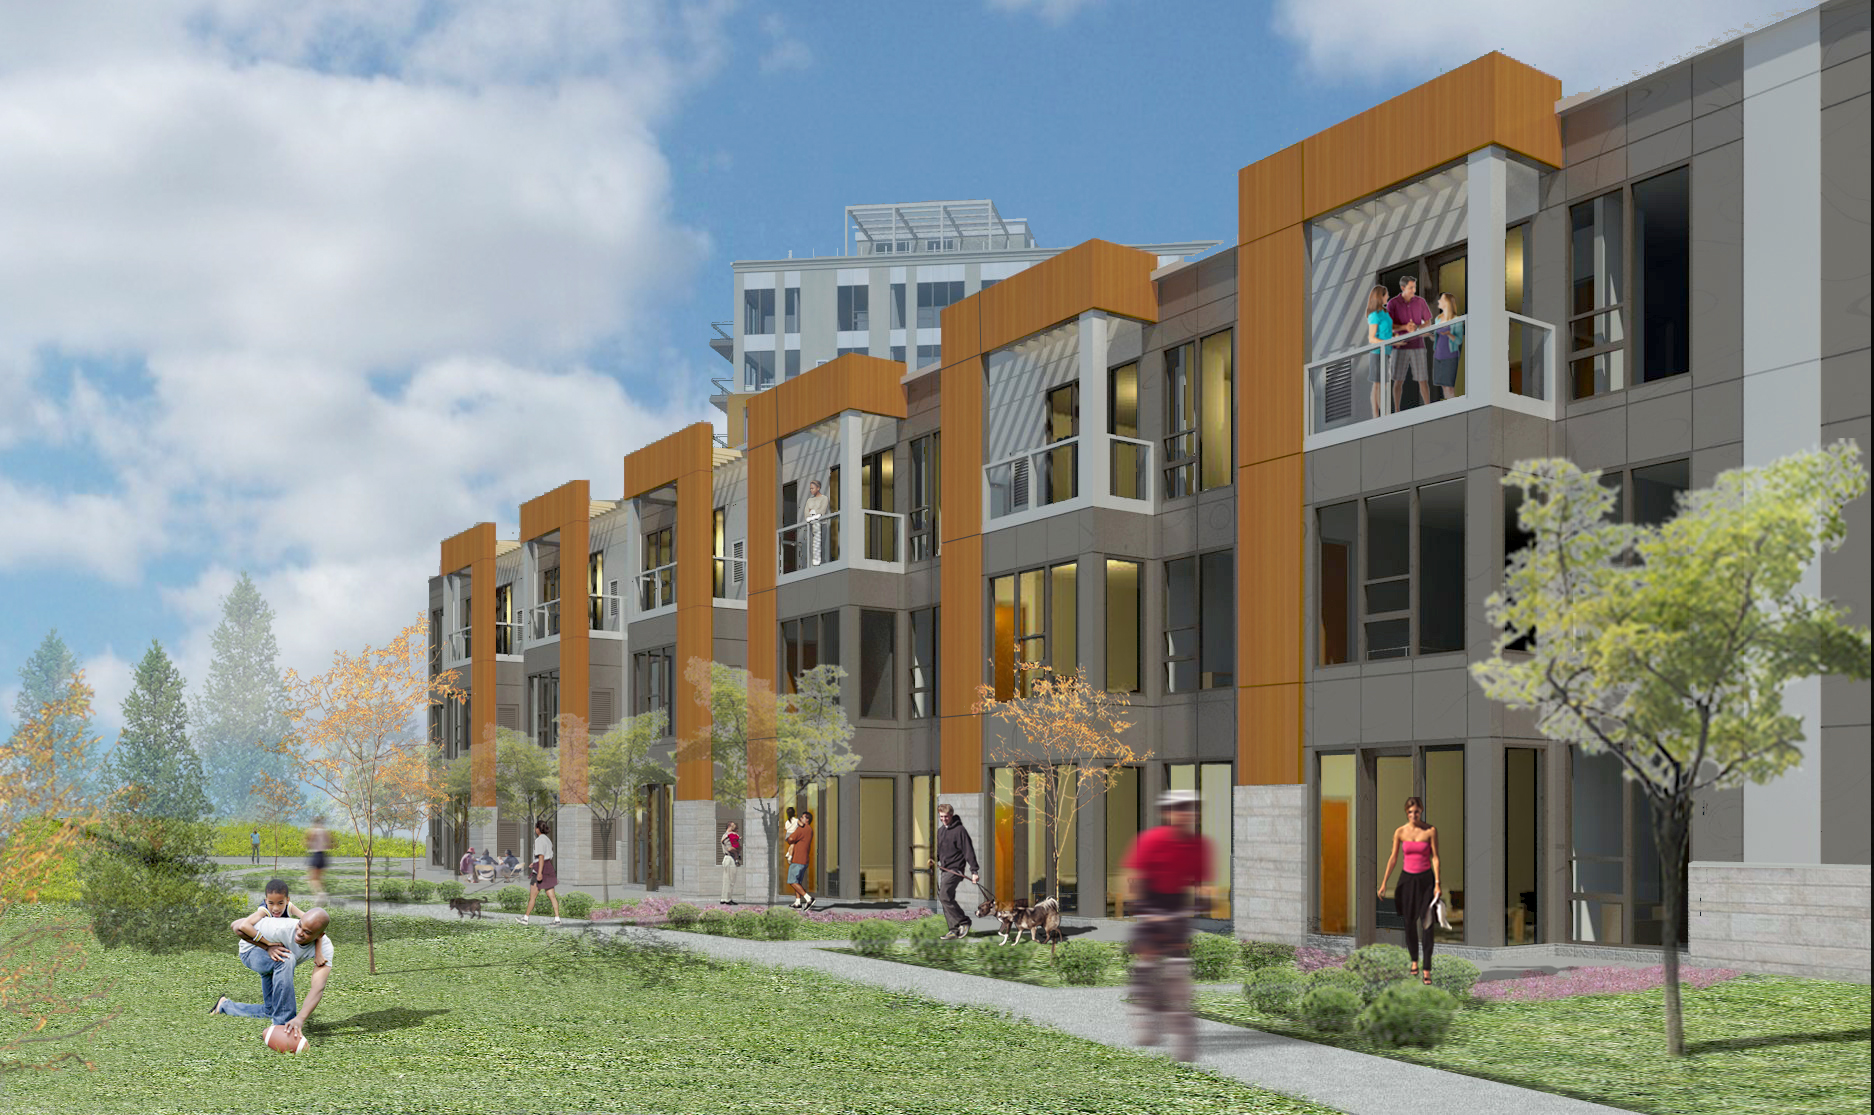 2 Bedroom Apartments Madison Wi Stuartco Announces Ground Breaking On New Apartments On